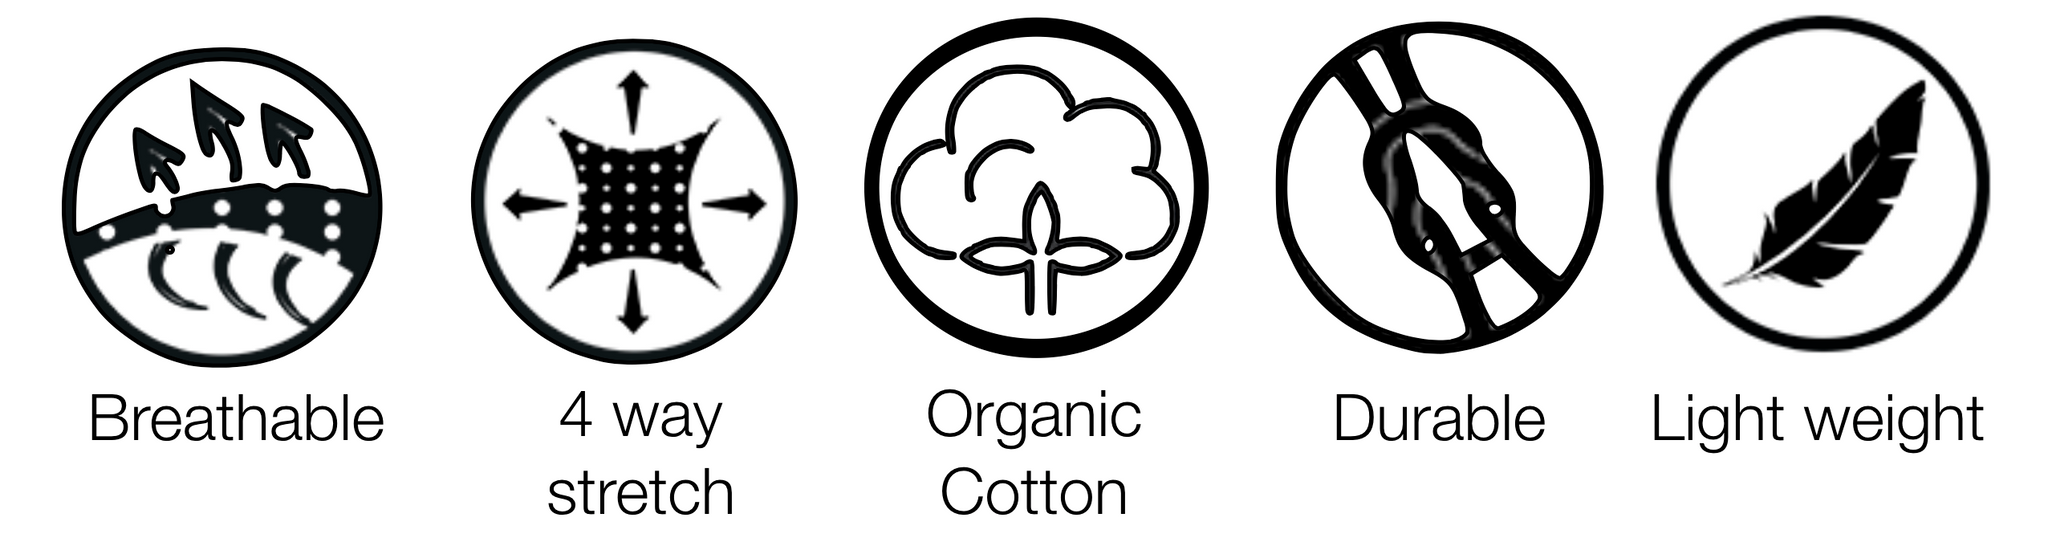 Nzo Organic Cotton T fabric features